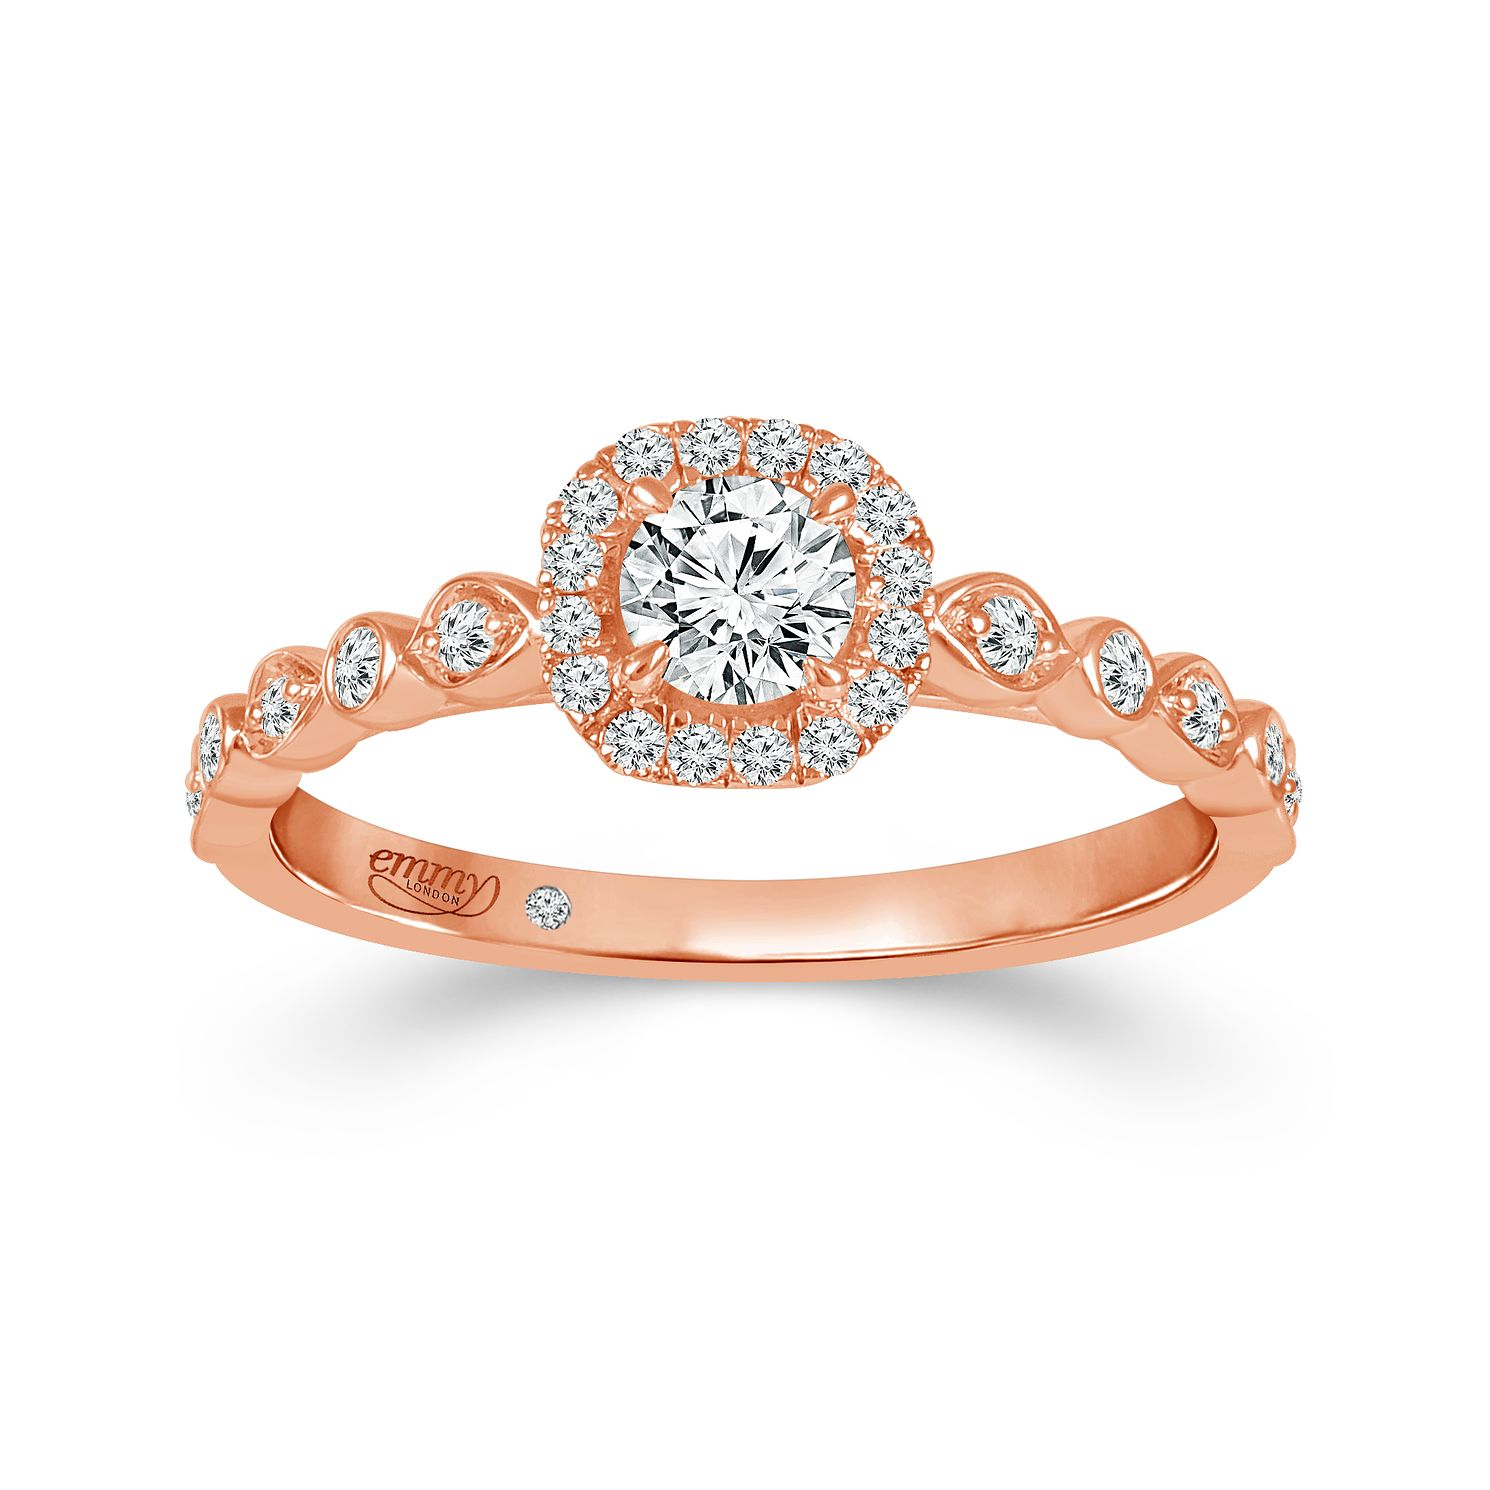 Emmy London 18ct Rose Gold 0.40ct Diamond Halo Ring - Product number 4571584